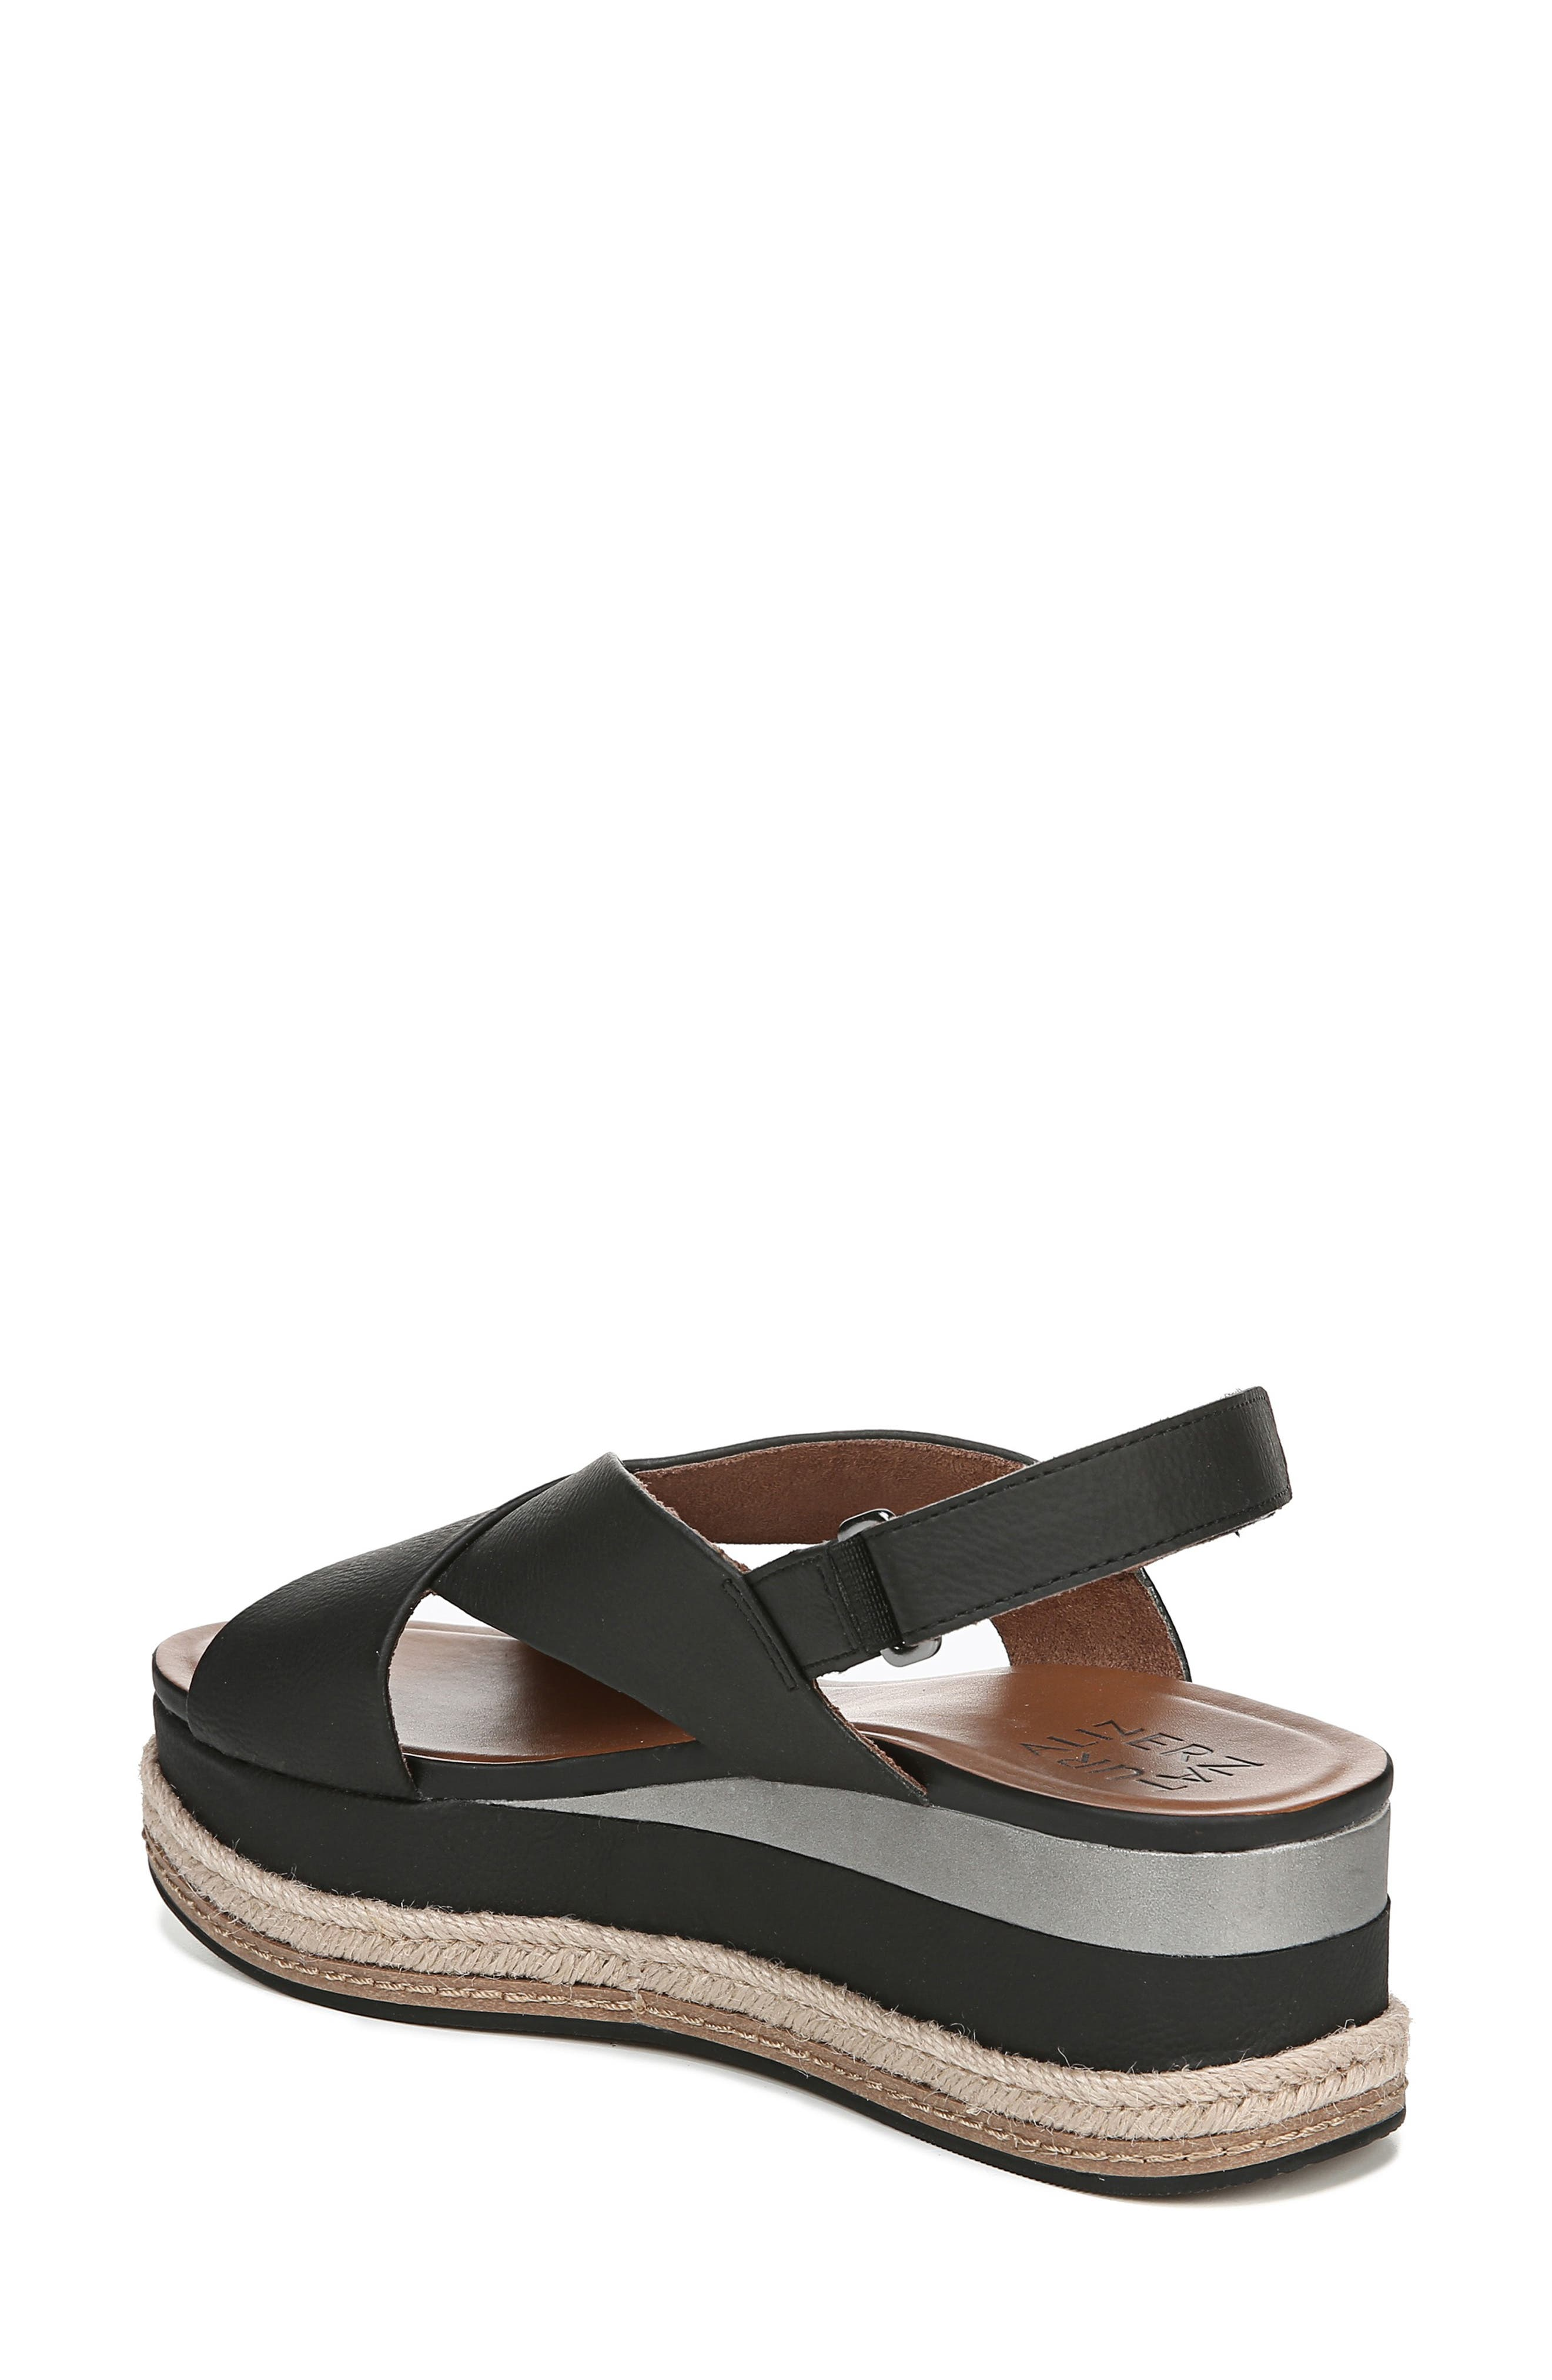 ,                             Baya Espadrille Wedge Sandal,                             Alternate thumbnail 2, color,                             BLACK NUBUCK LEATHER